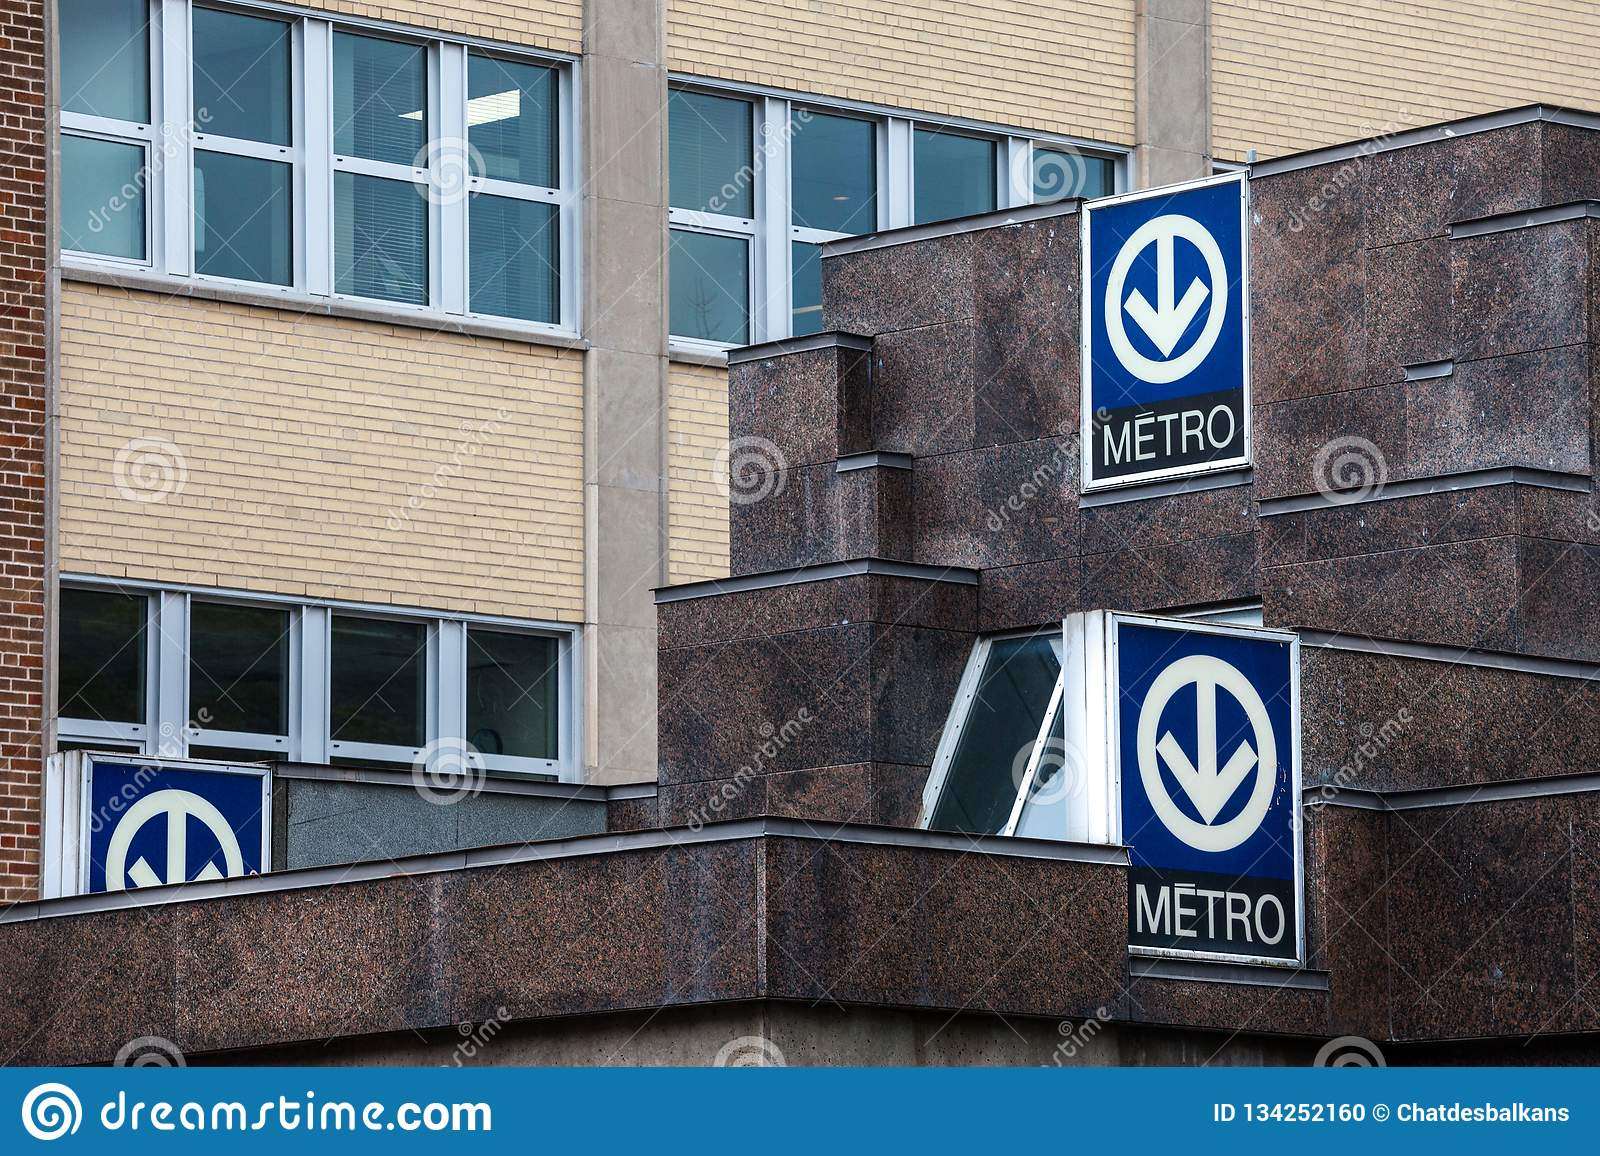 Blue Signs indicating a subway station with its distinctive logo on the Montreal metro system, managed by the STM